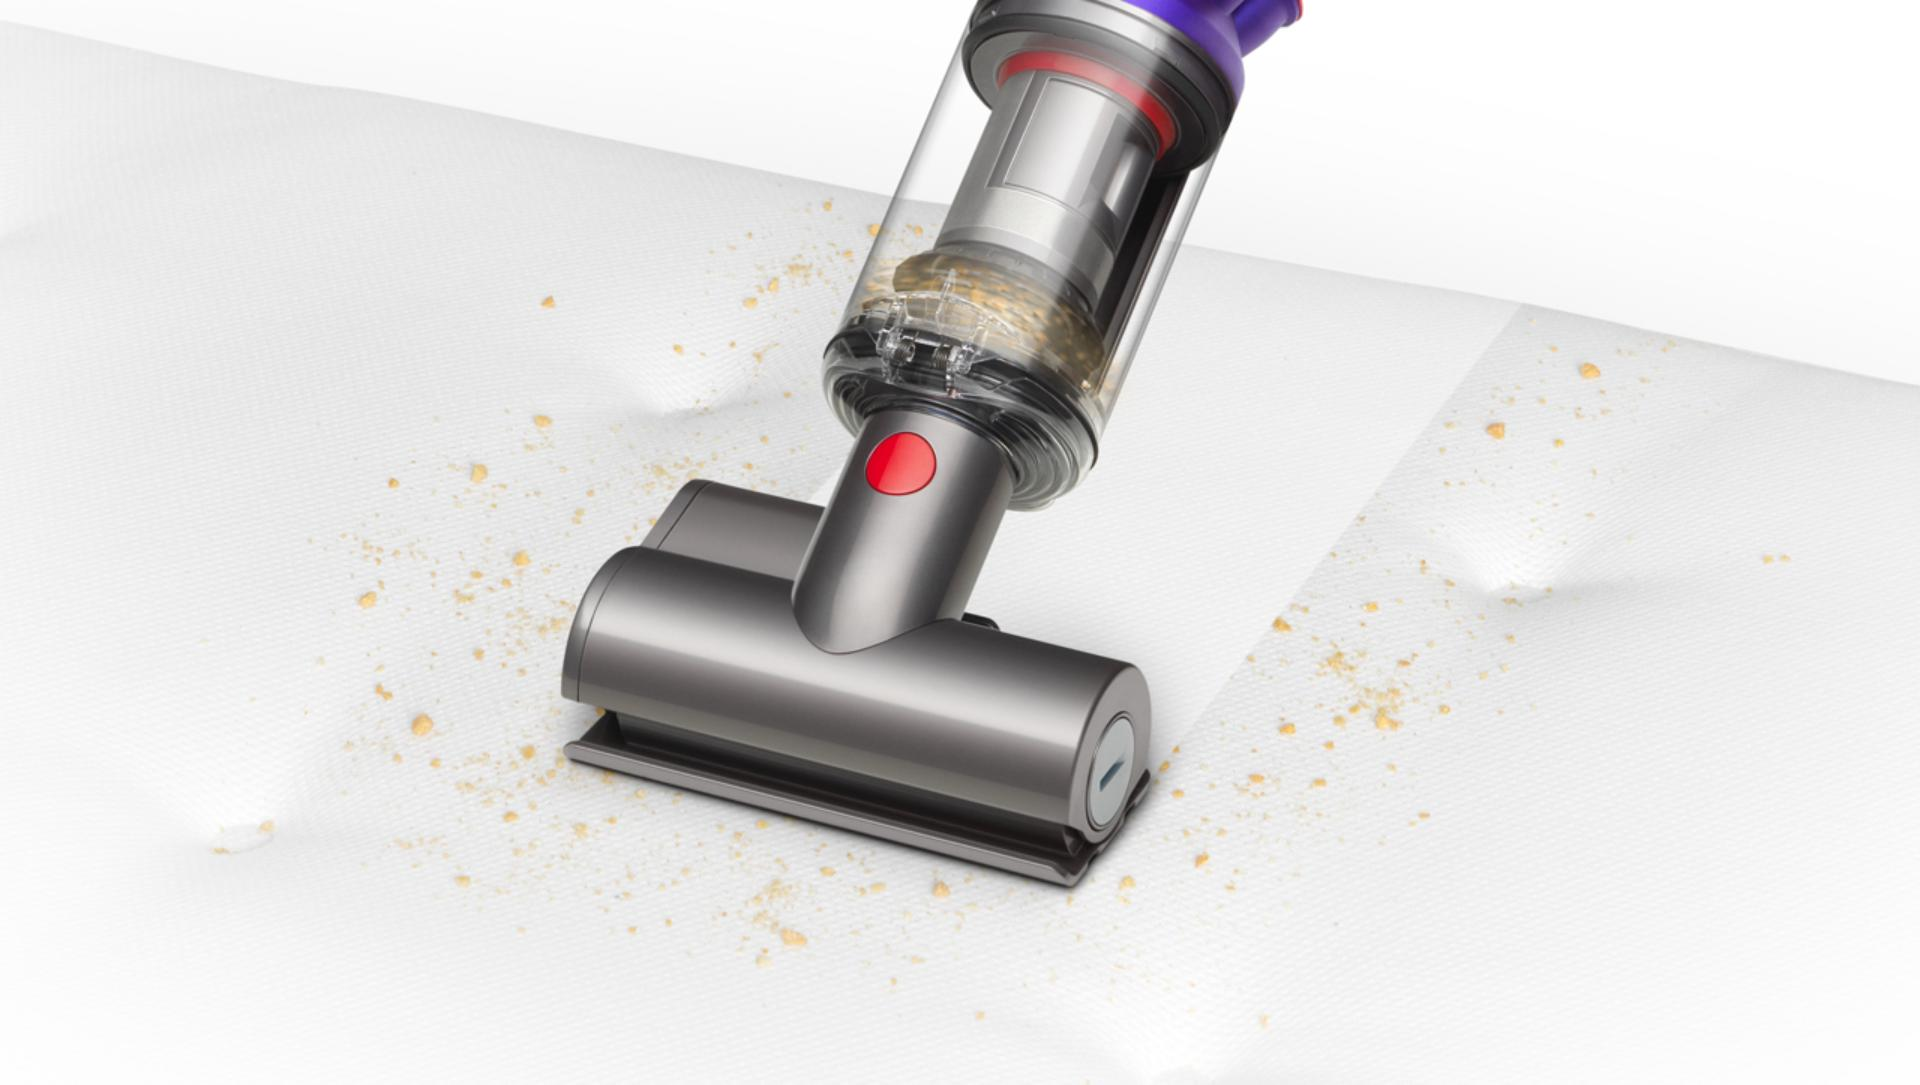 Mini motorised tool being used to clean a mattress.